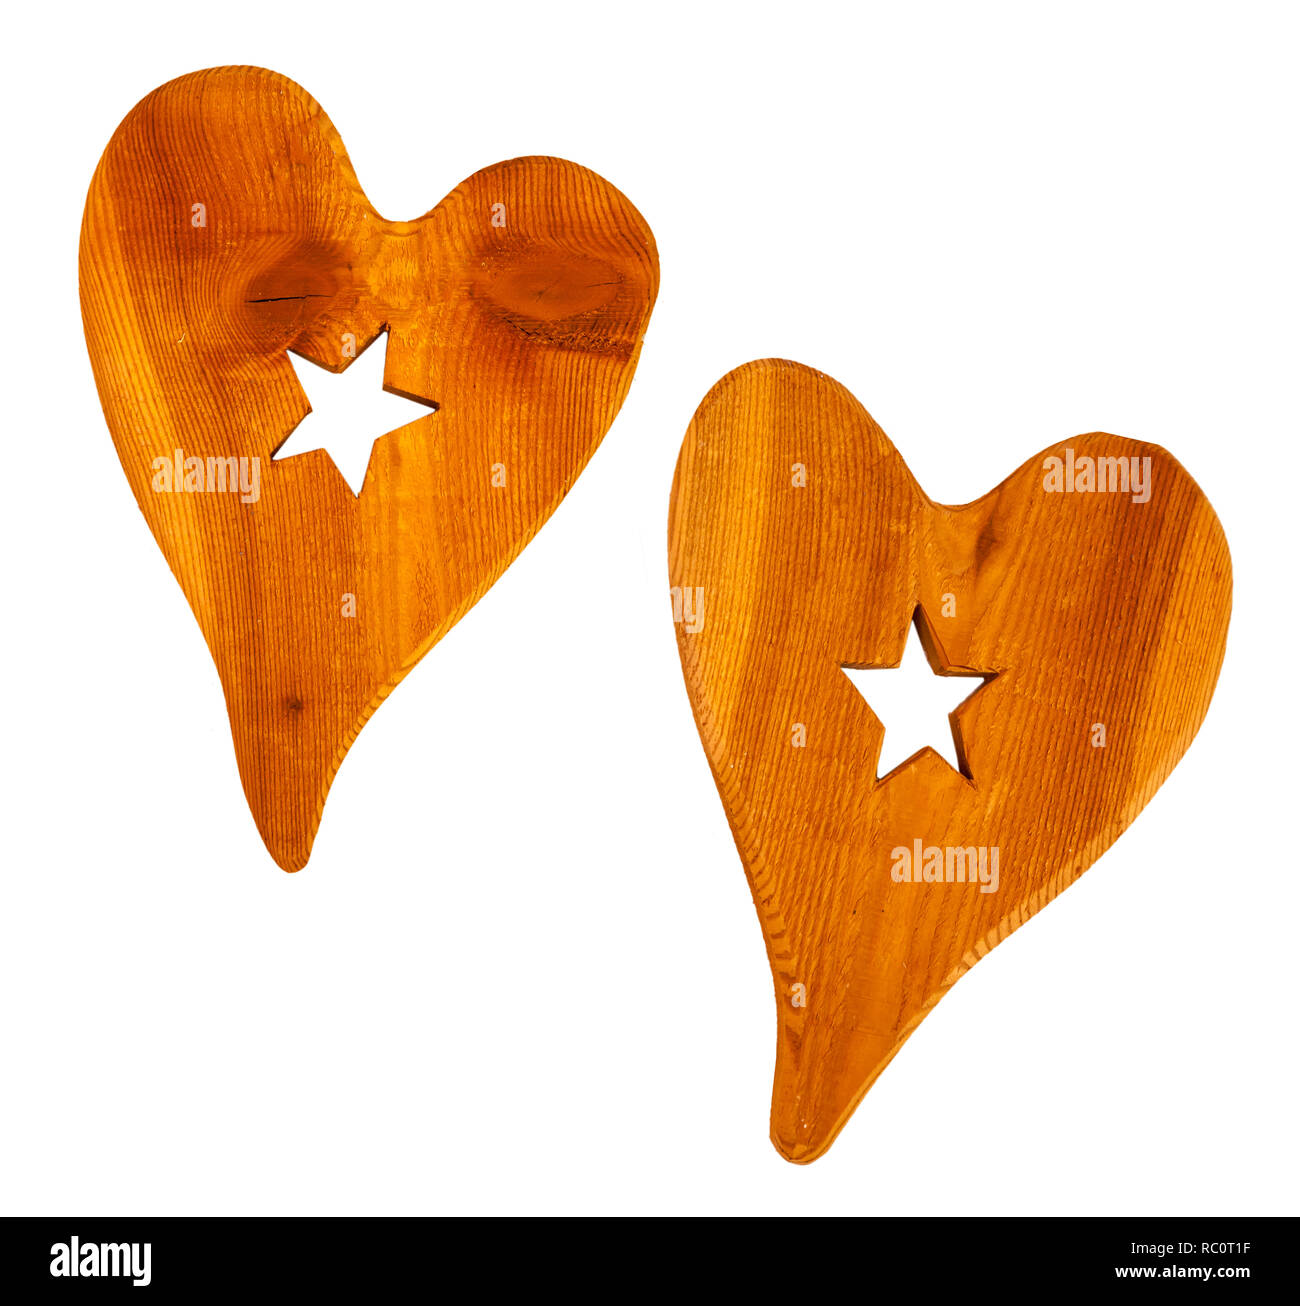 Two big wooden hearts sawn with stars in the middle - Stock Image